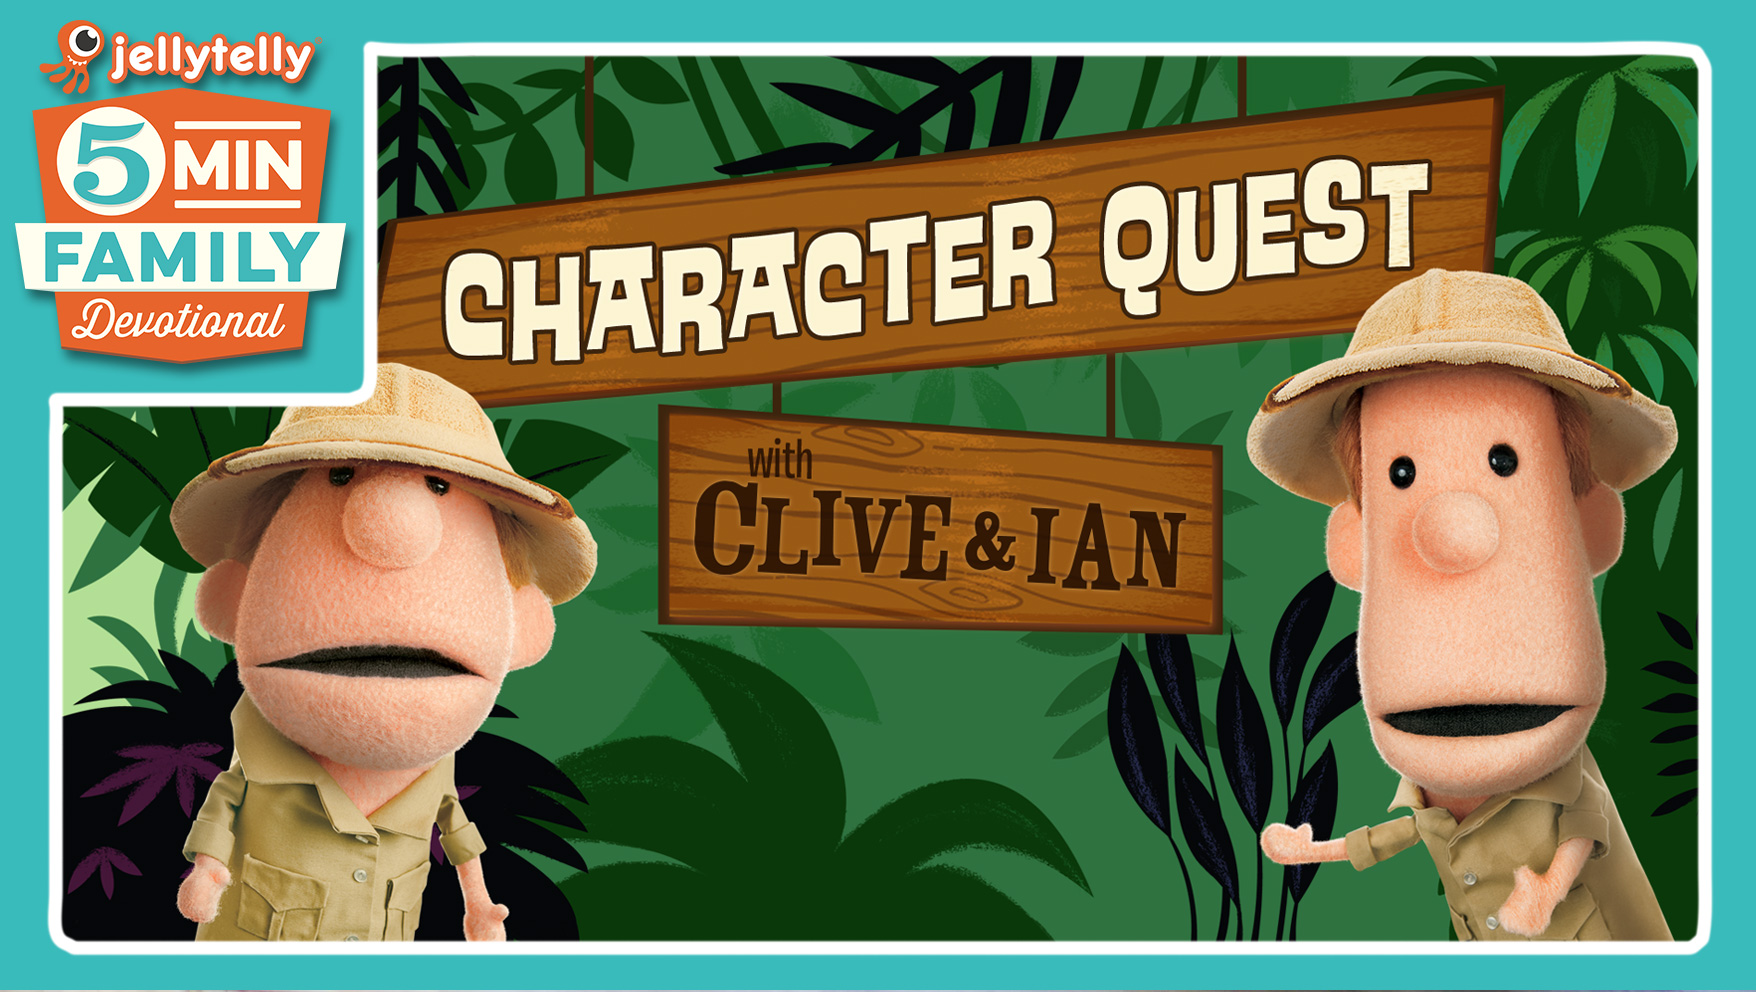 Character Quest with Clive and Ian - A New 5 Minute Family Devotional